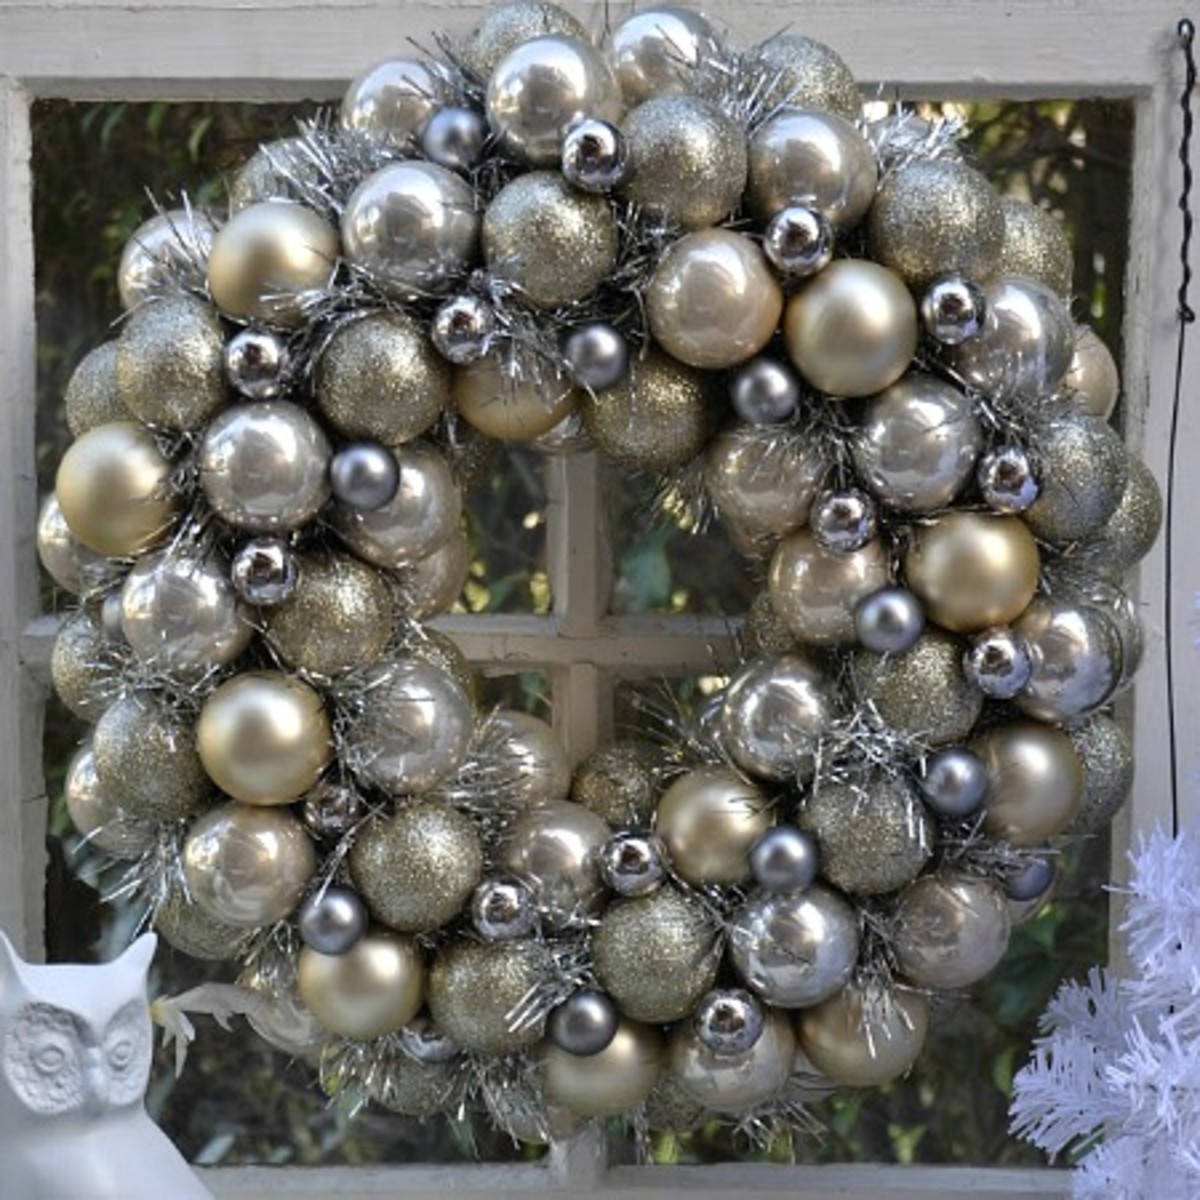 Image #8 - Metallic Christmas Ornament Wreath